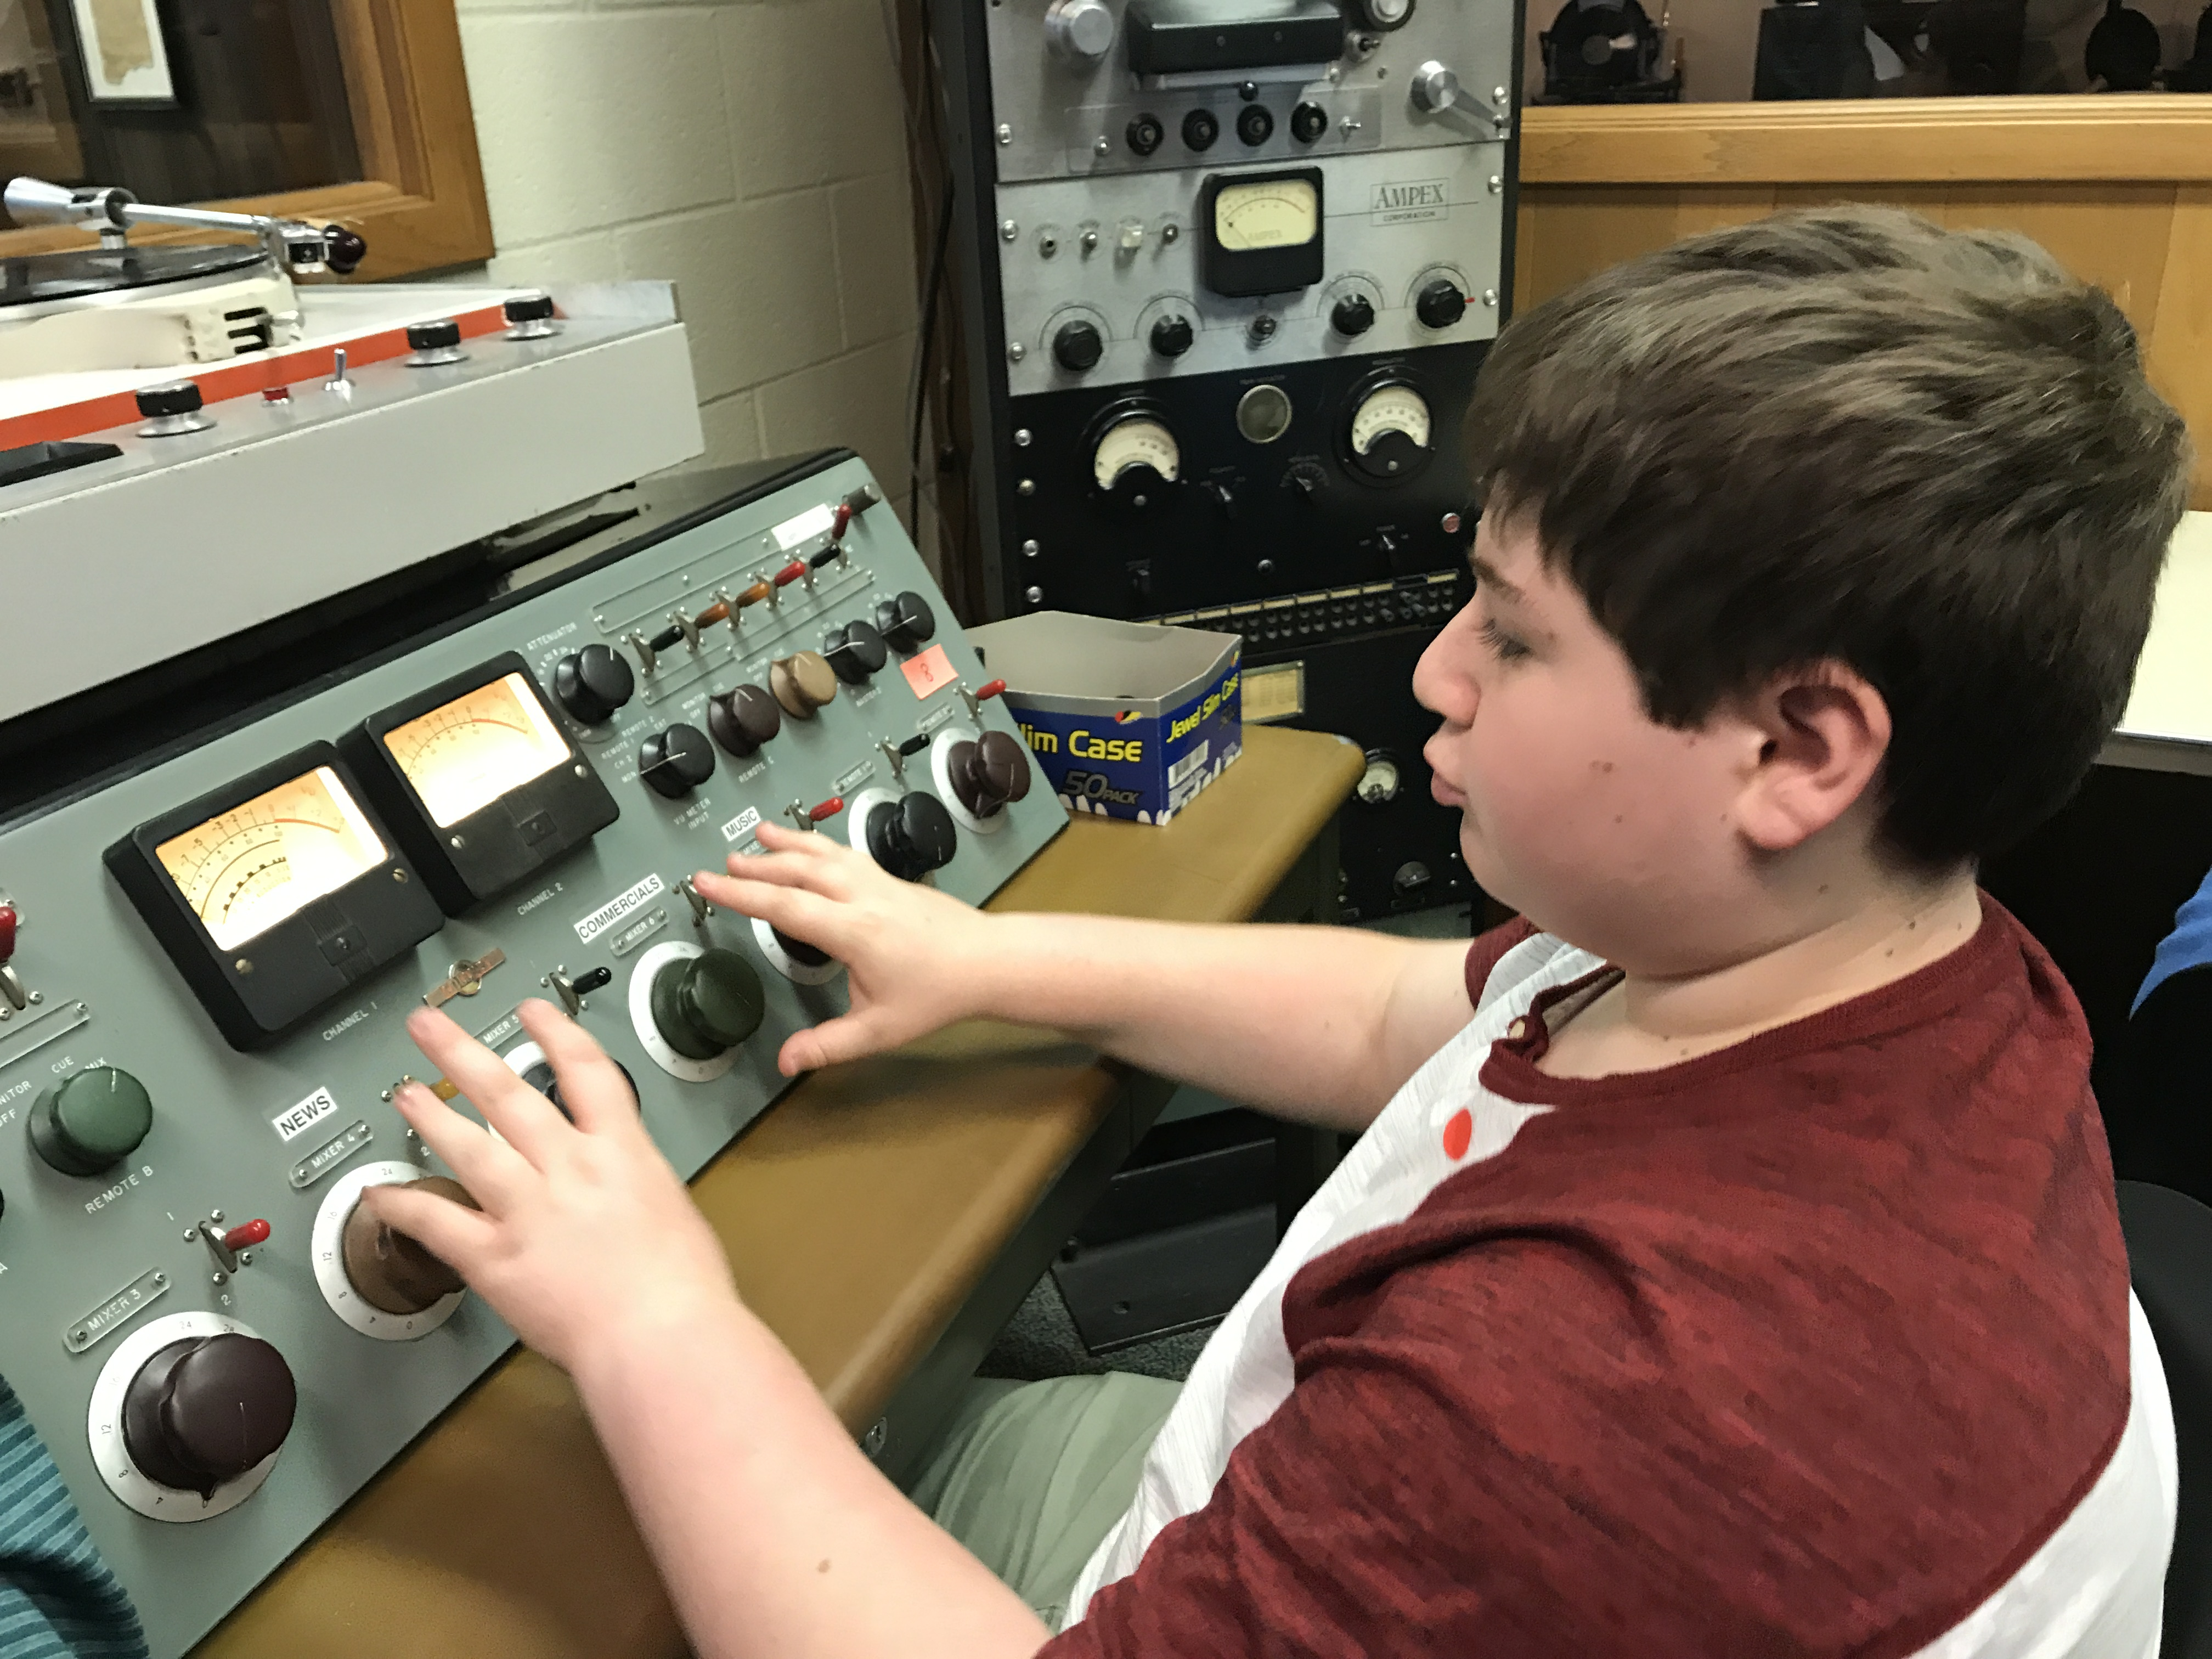 8th Grader experiments with old broadcasting equipment on field trip to Pavek Museum